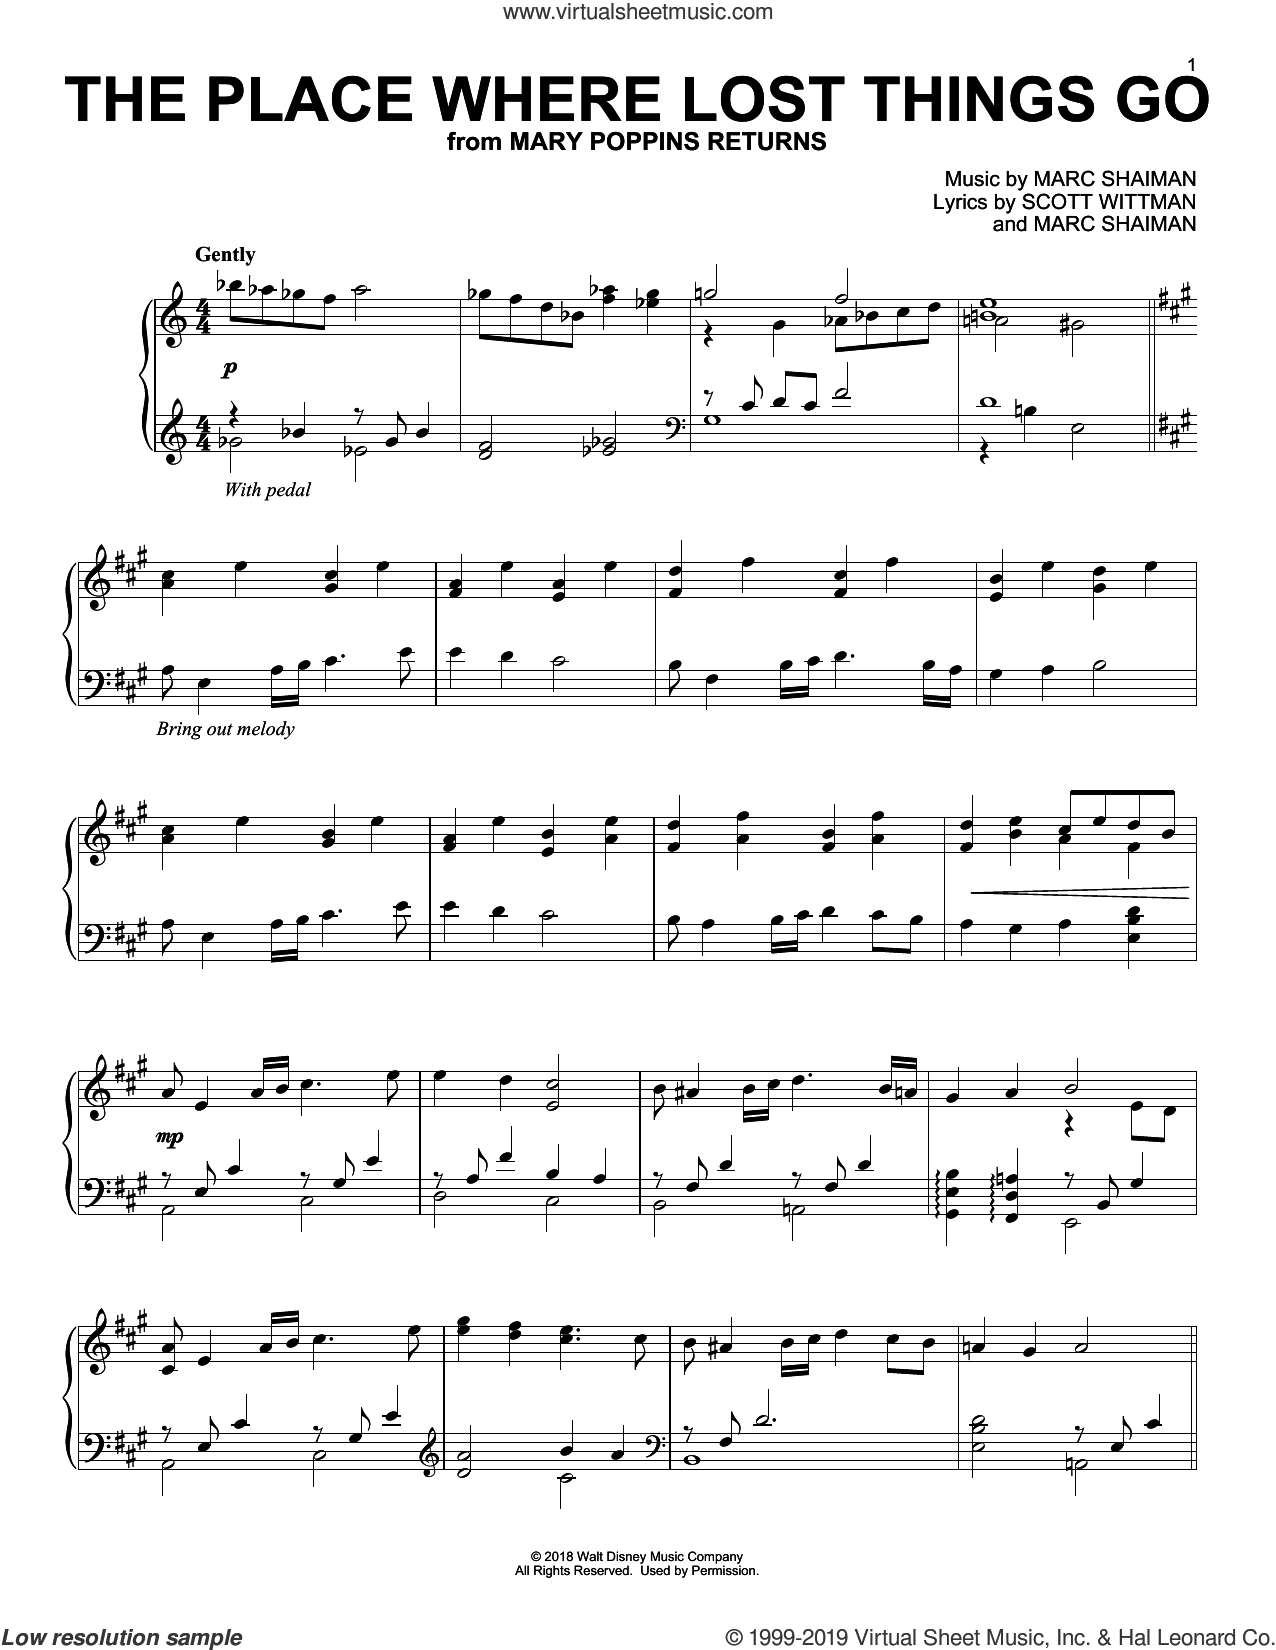 The Place Where Lost Things Go (from Mary Poppins Returns) sheet music for piano solo by Emily Blunt, Marc Shaiman and Scott Wittman, intermediate skill level